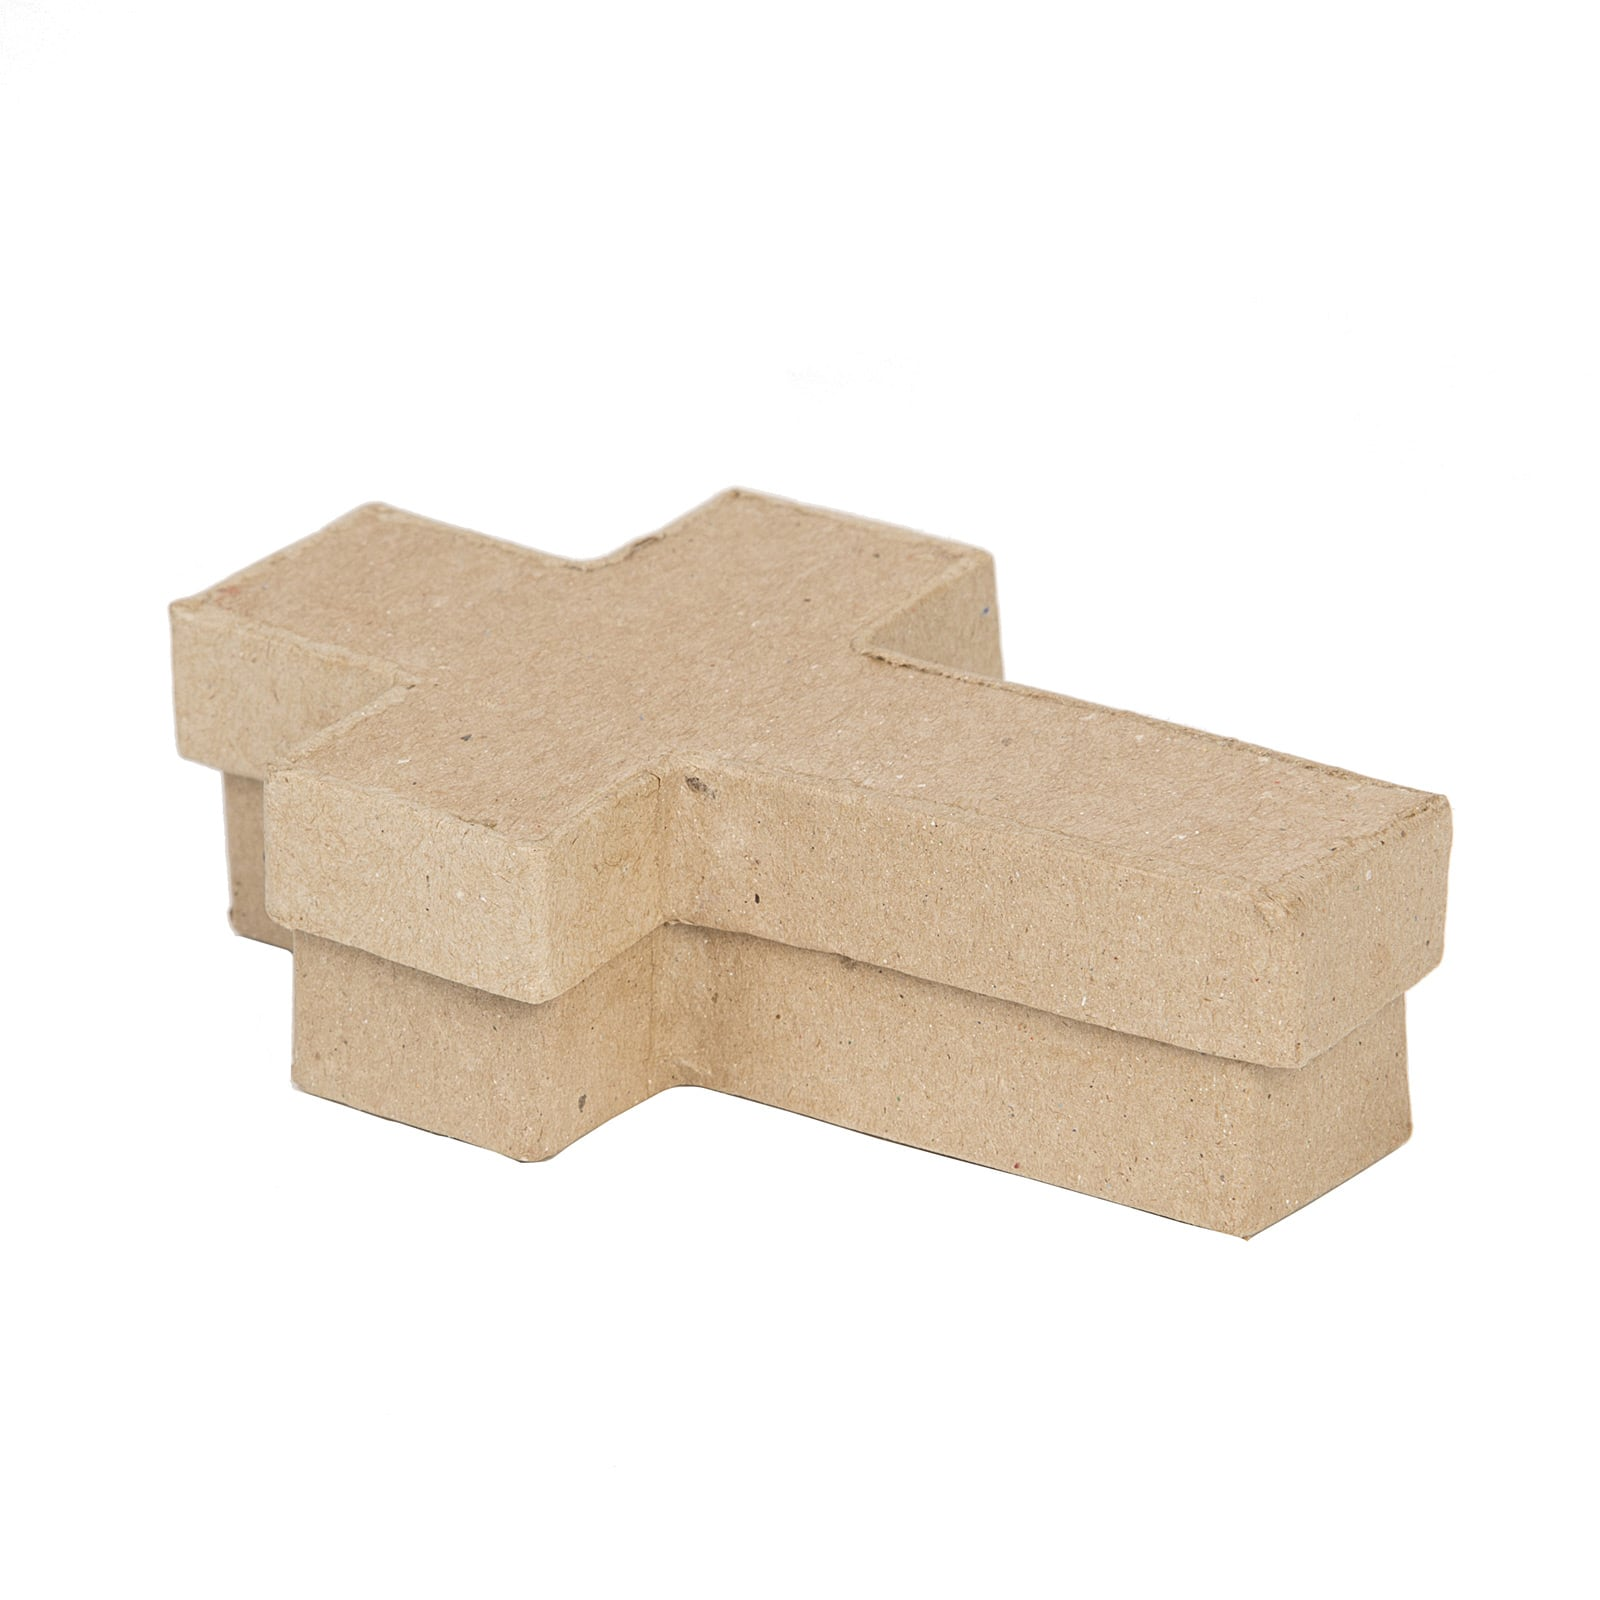 Darice 2871-71 Rectangle Paper Mache Box 11 by 9-Inch